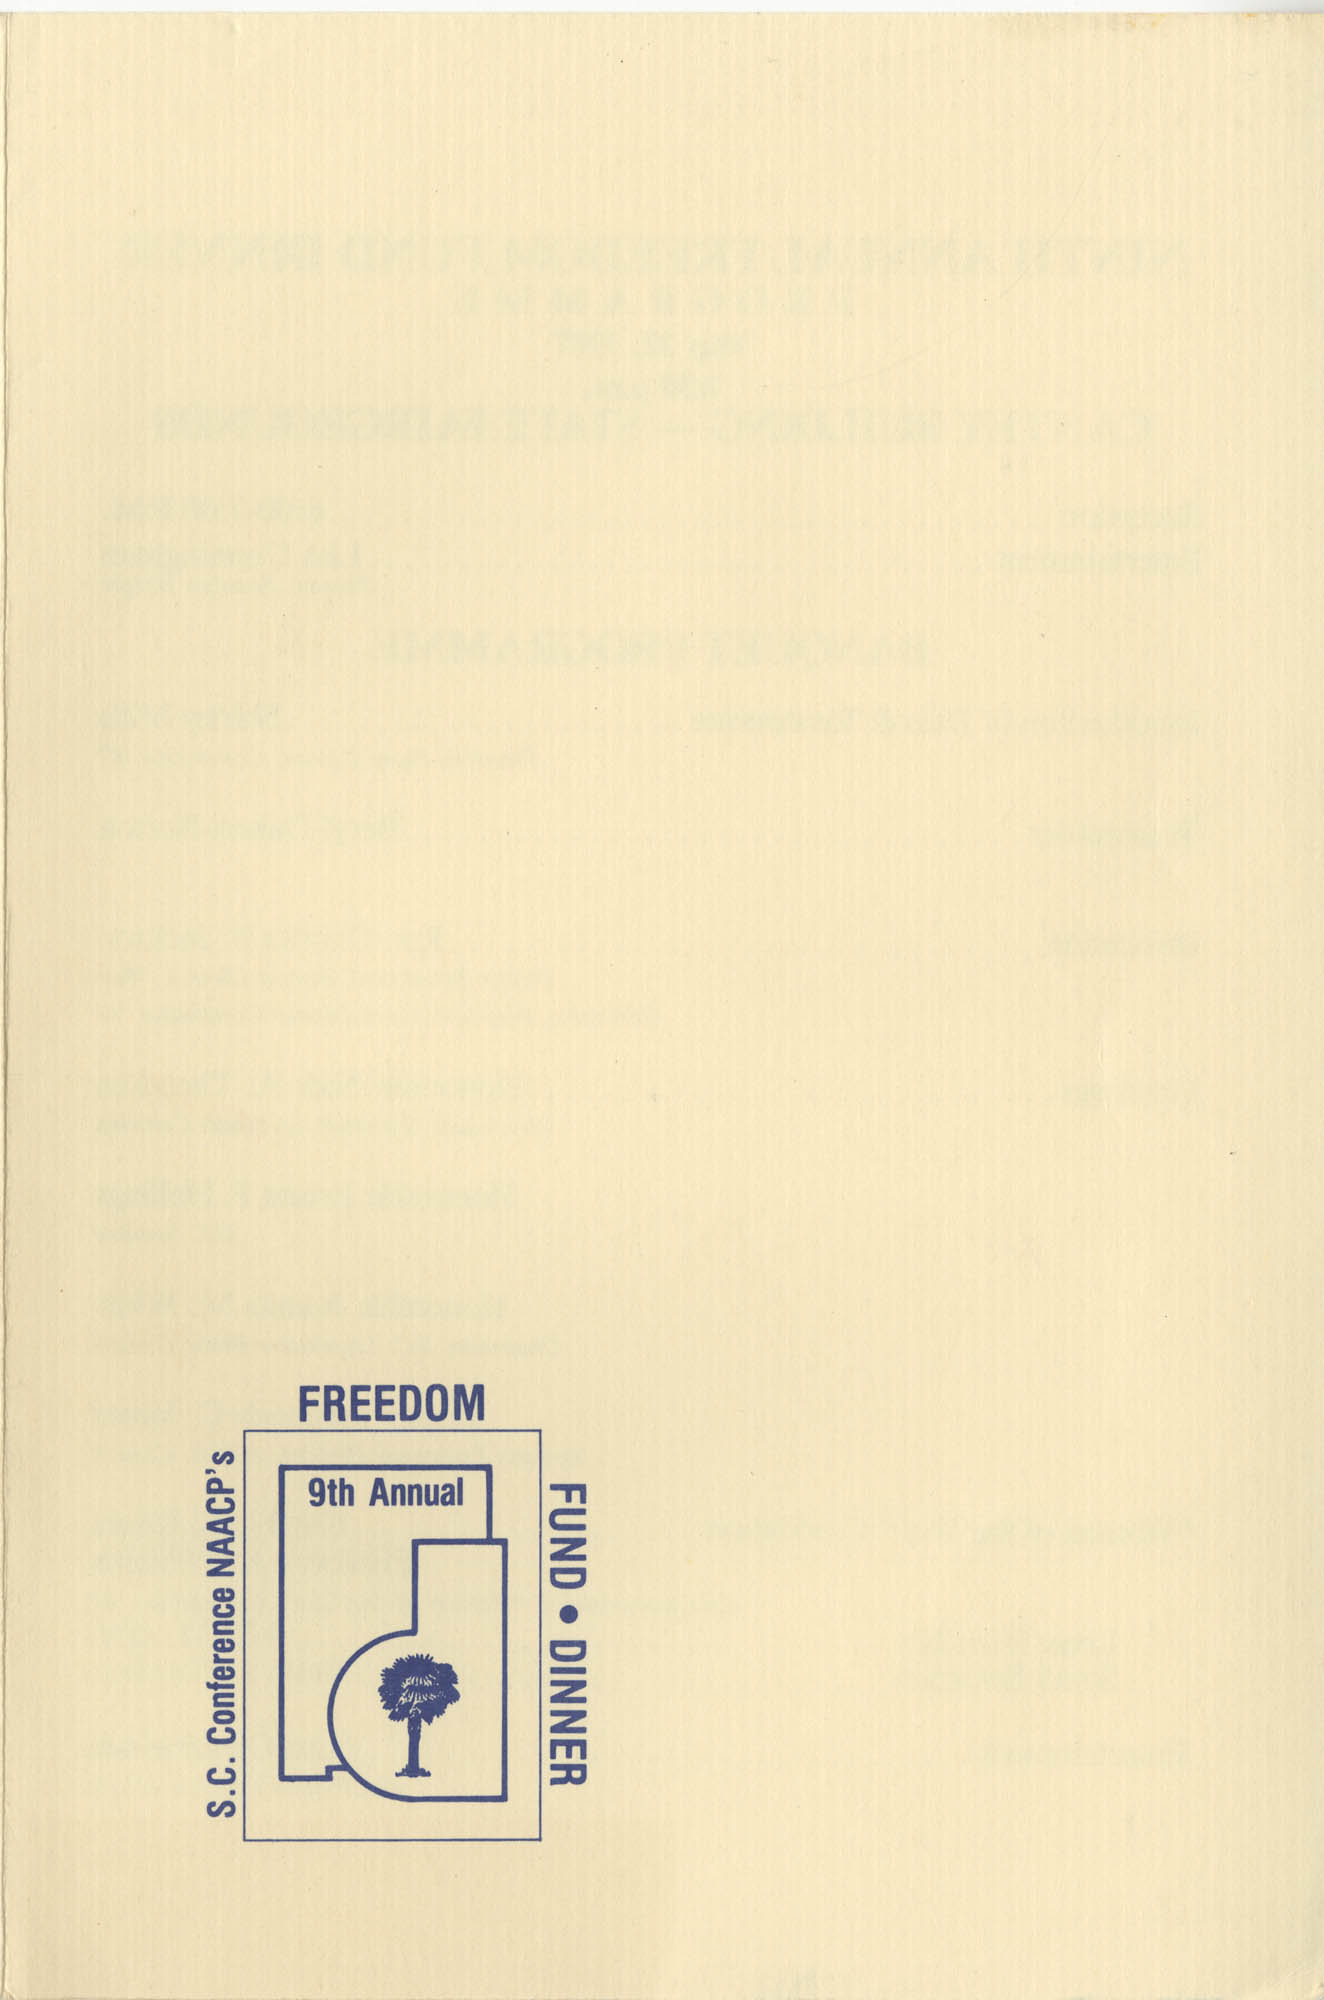 Program, 9th Annual Freedom Fund Dinner, NAACP, S.C. Conference, May 22, 1987